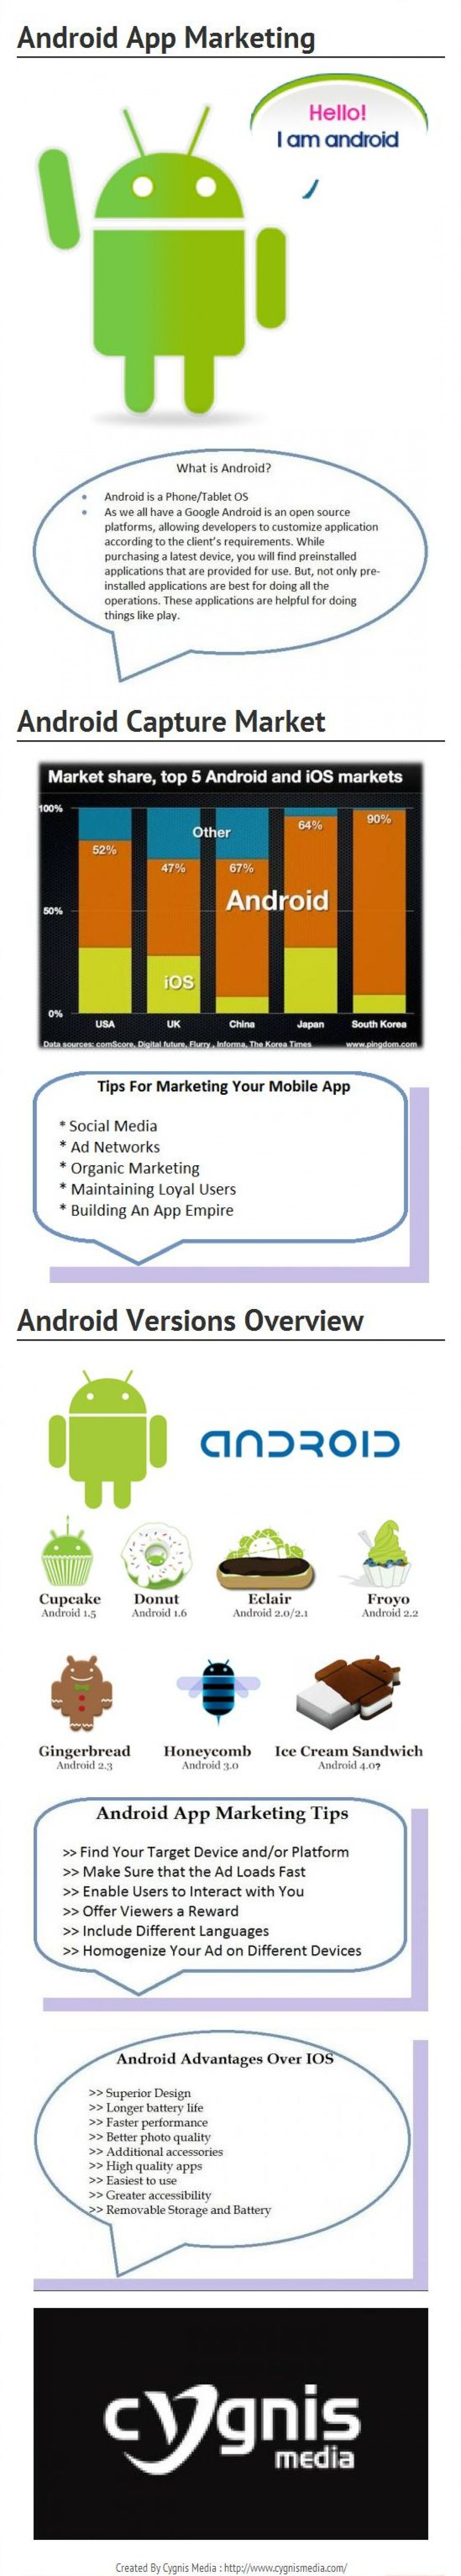 Android App Marketing Infographic